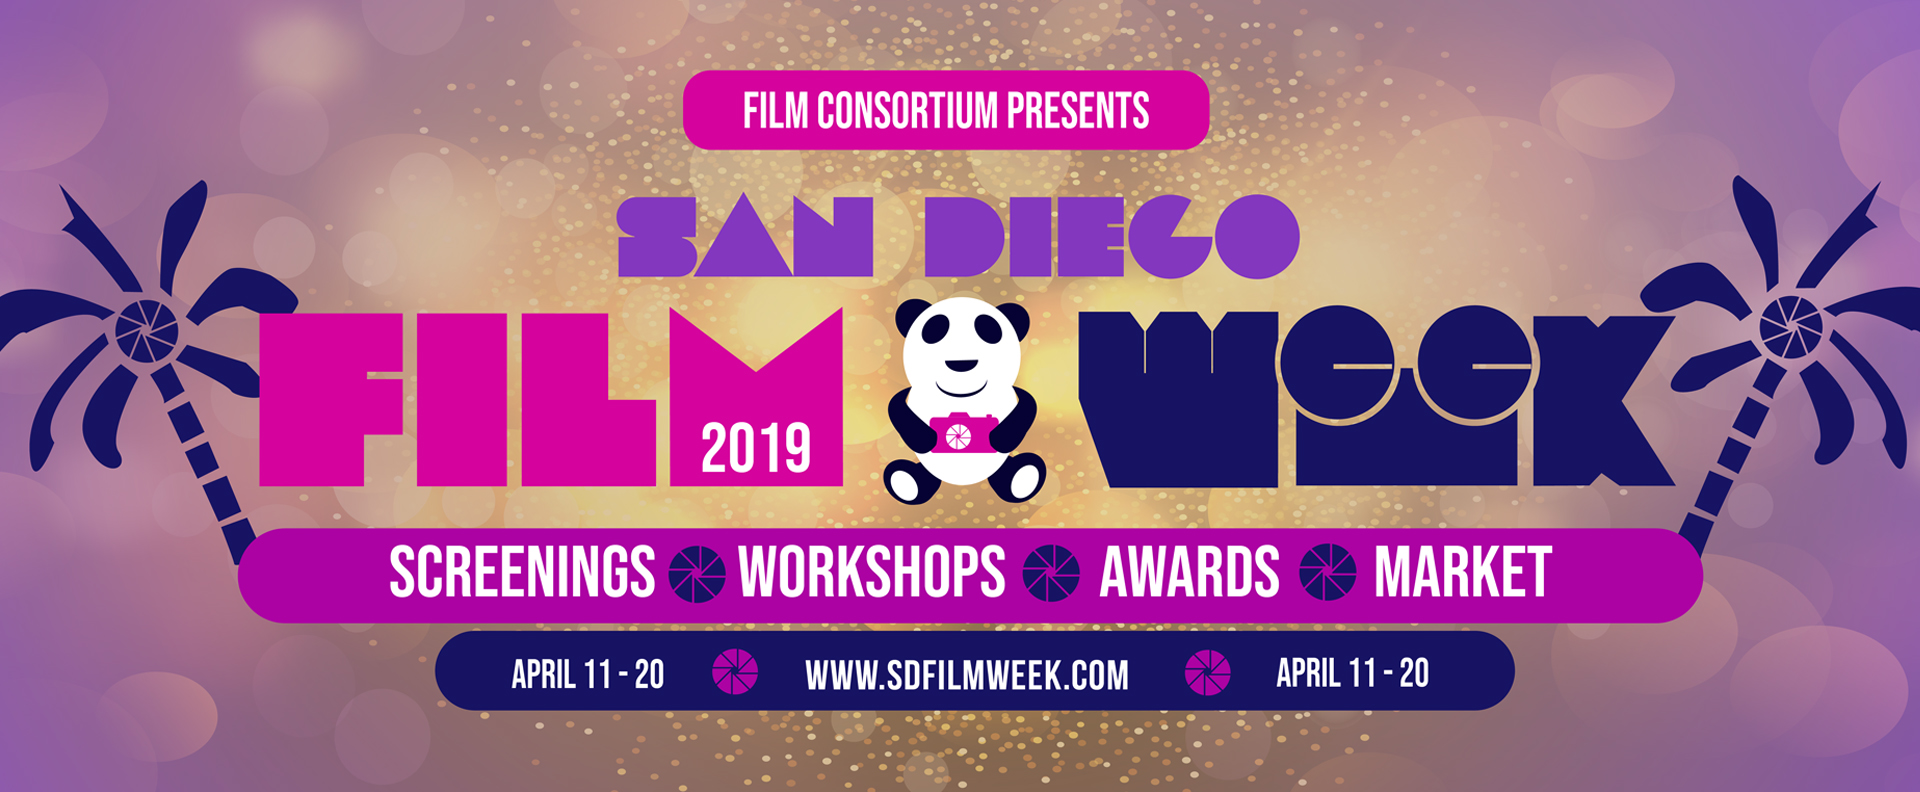 Film Consortium Presents: San Diego Film Week (April 13 – 14)